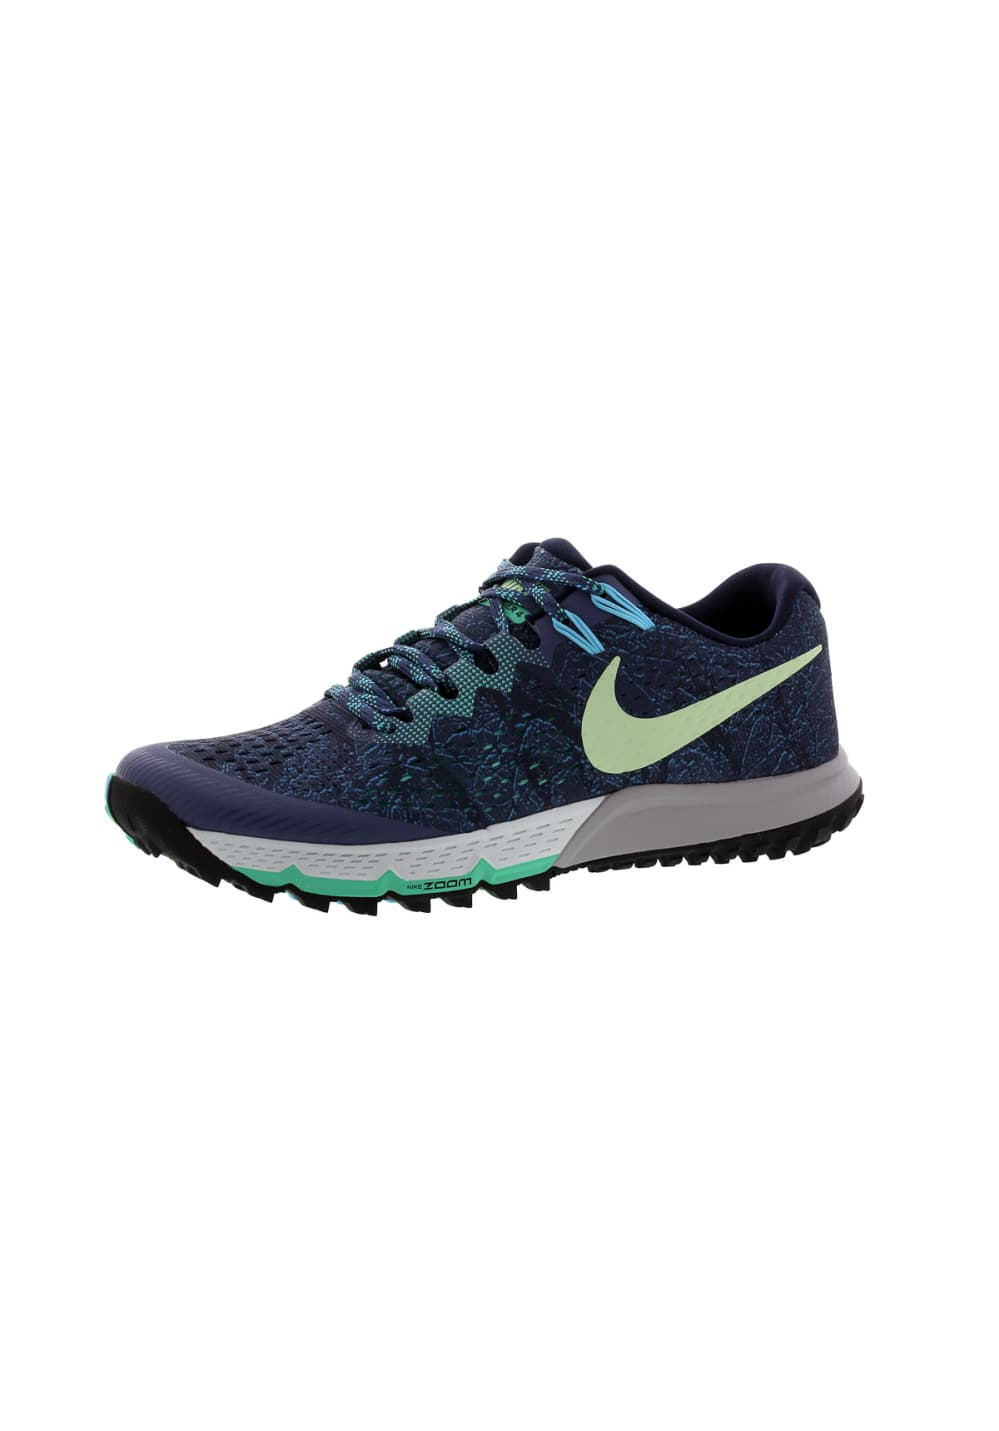 99a72c0e89b2 Next. -25%. This product is currently out of stock. Nike. Air Zoom Terra  Kiger 4 - Running shoes for Women